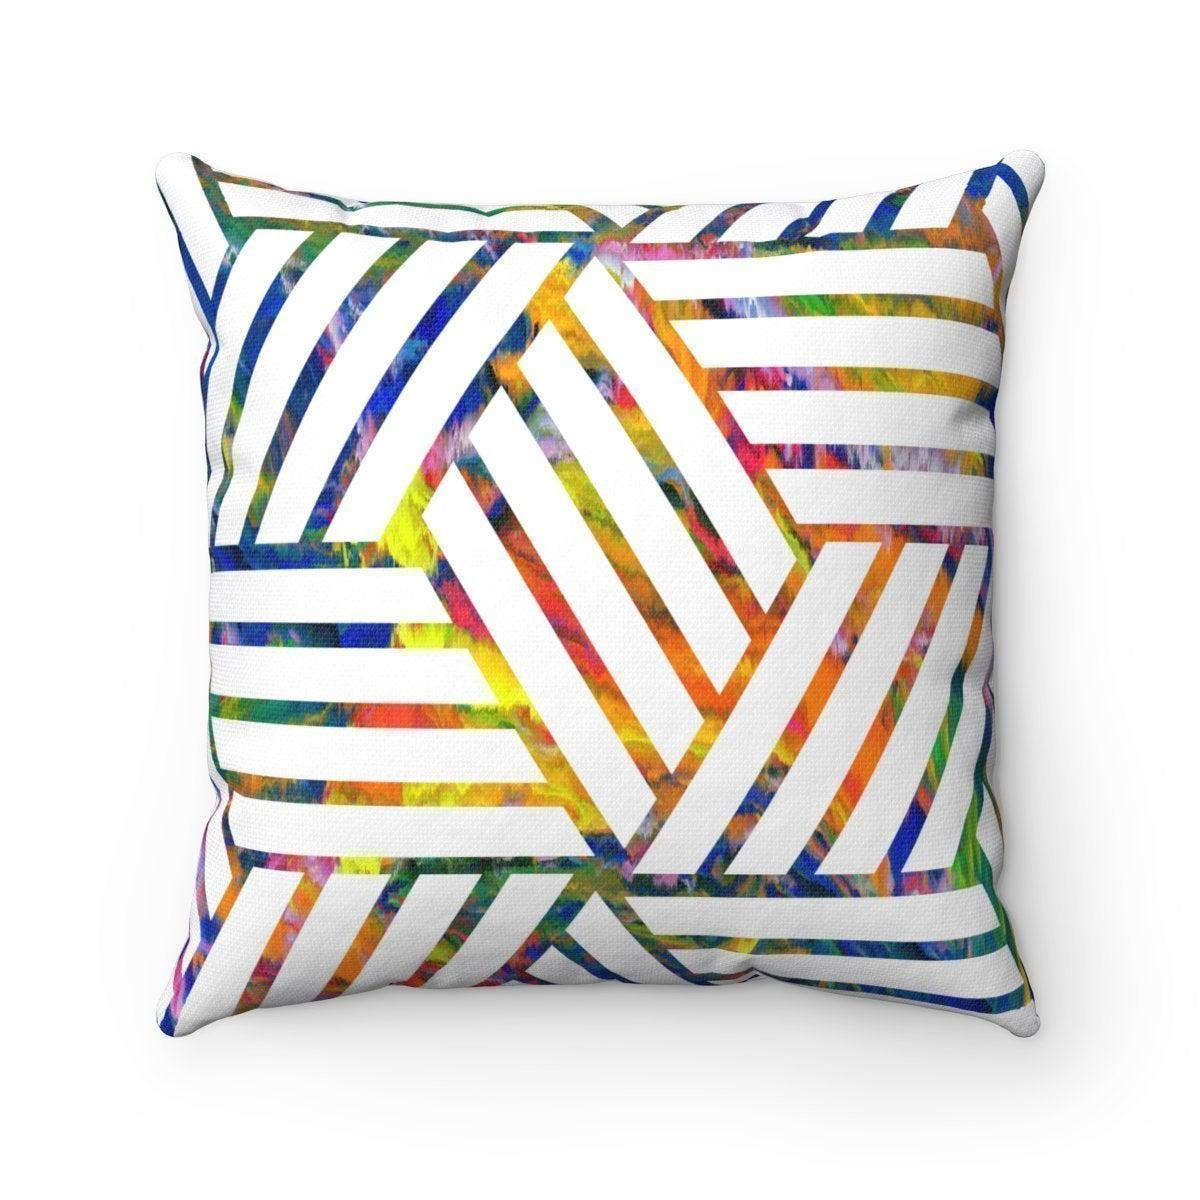 Geometric decorative cushion cover-Home Decor - Decorative Accents - Pillows & Throws - Decorative Pillows-Maison d'Elite-14x14-Très Elite